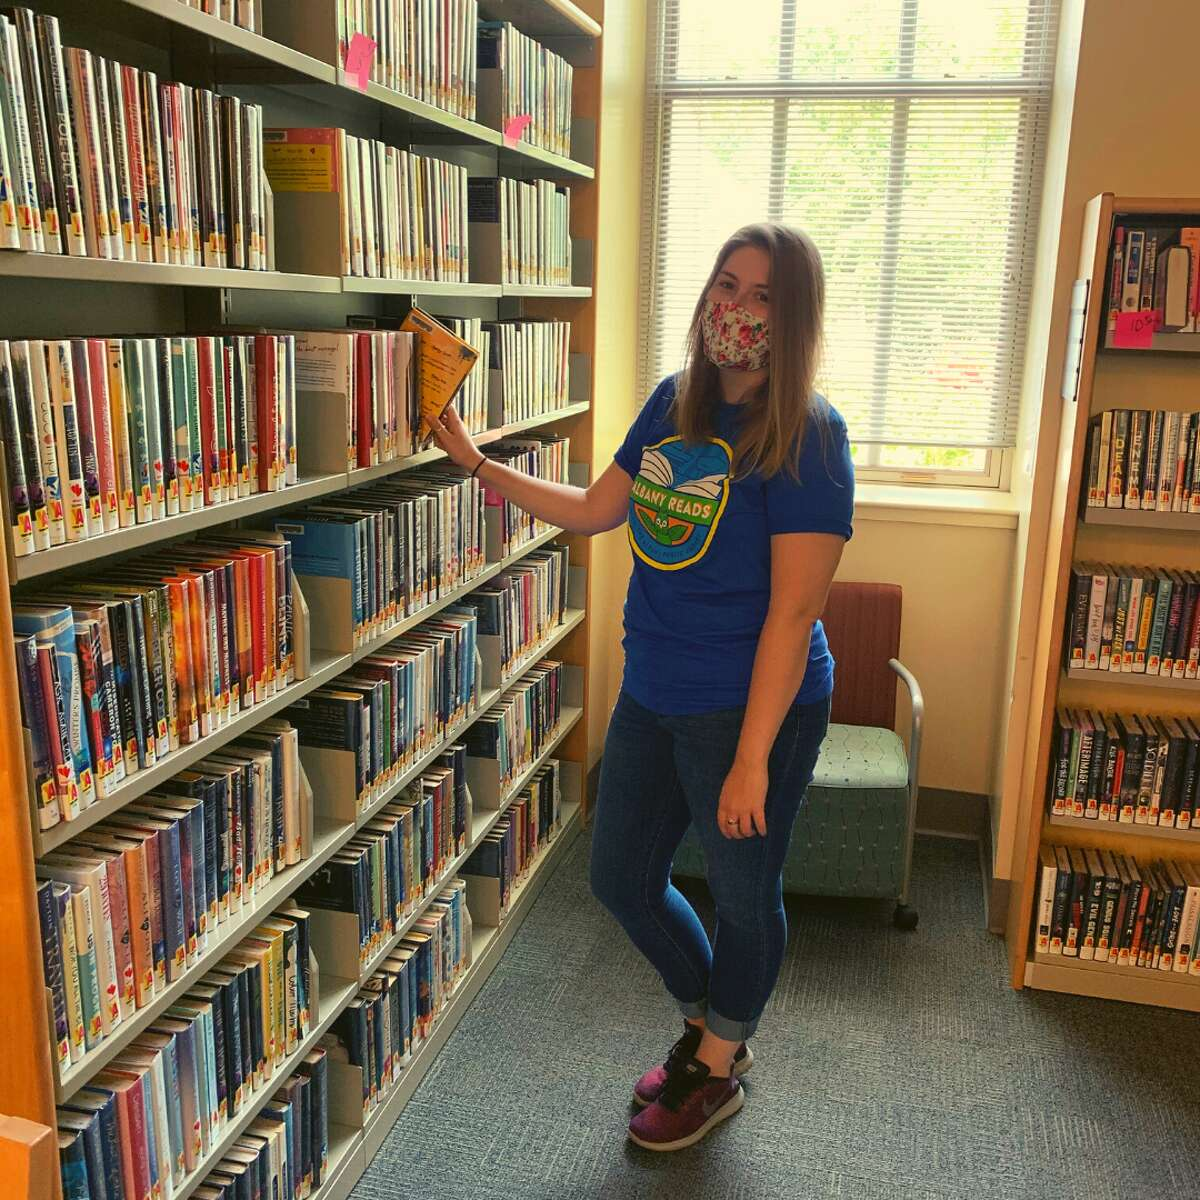 A staffer works on a shelving and weeding project at the Pine Hills Branch earlier this summer. Since the buildings are closed to the public right now, staff are spending some time getting the vast collections in tip-top shape. Credit: Albany Public Library